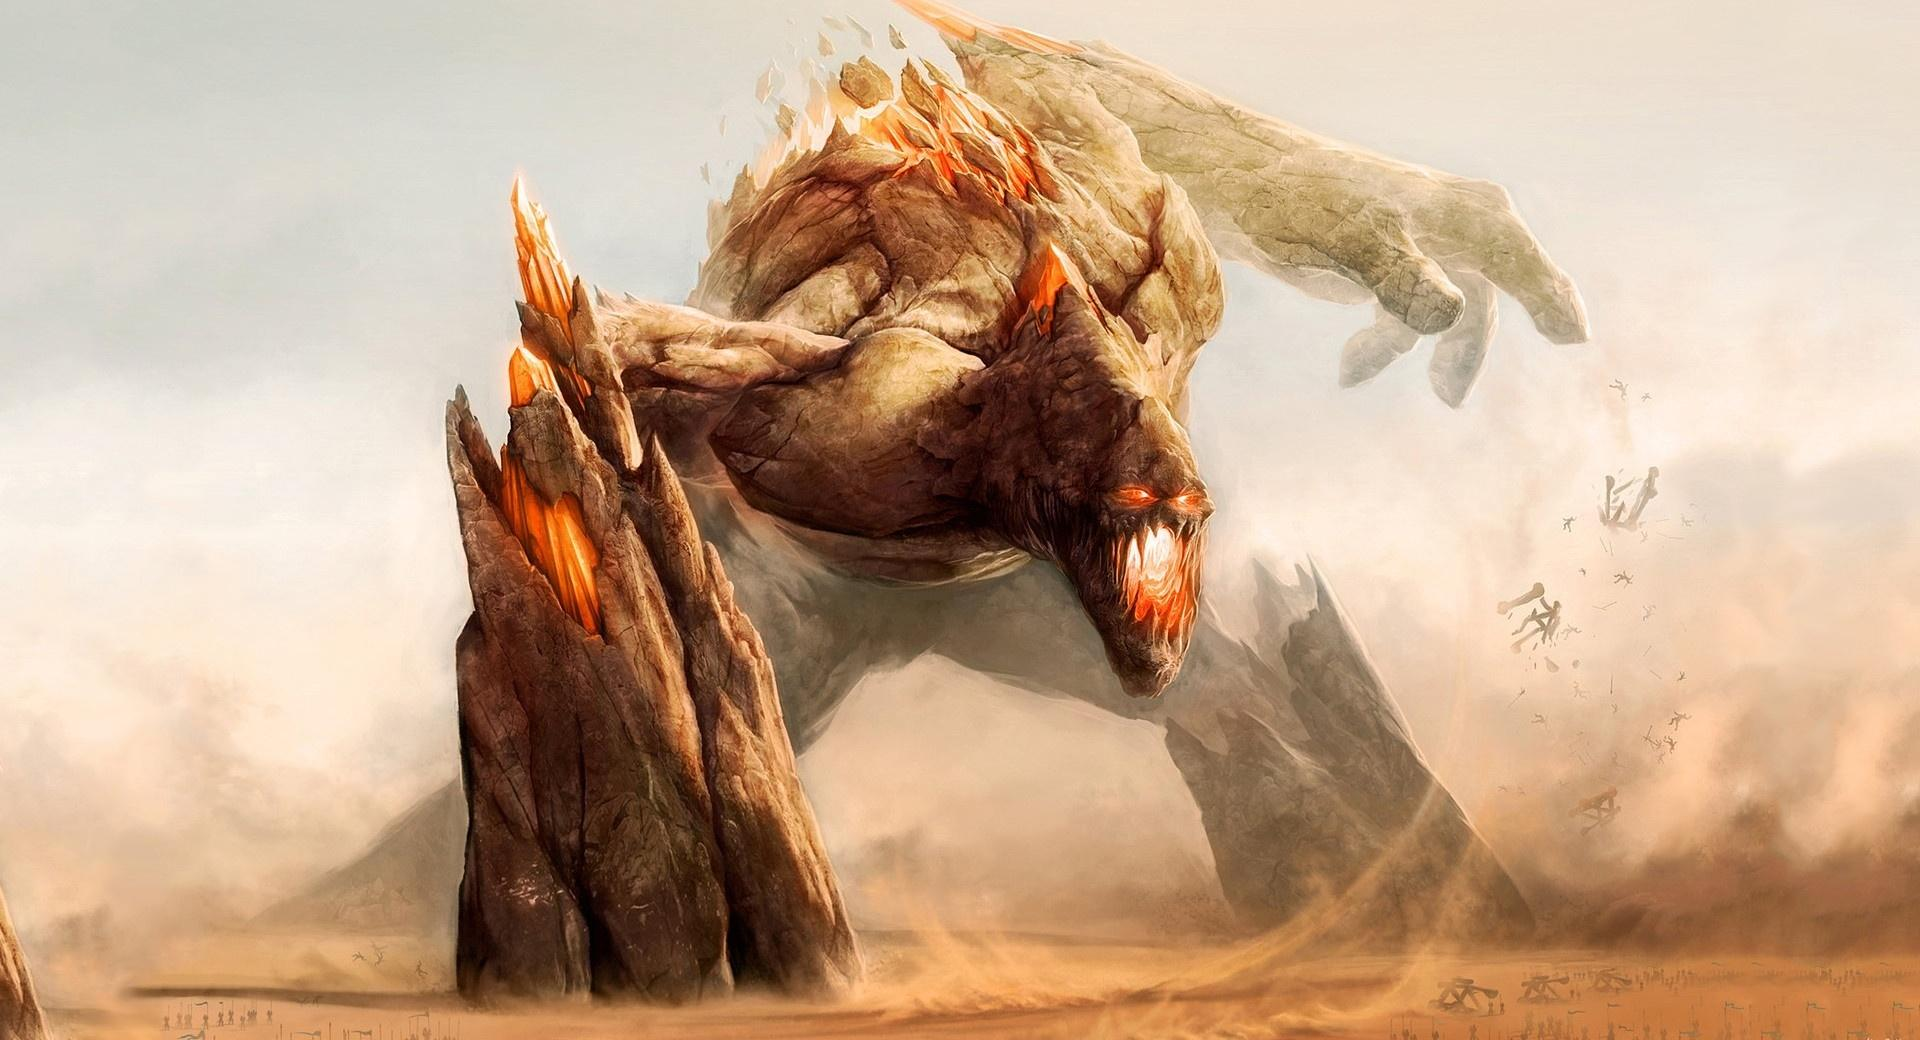 Rock Monster Painting wallpapers HD quality